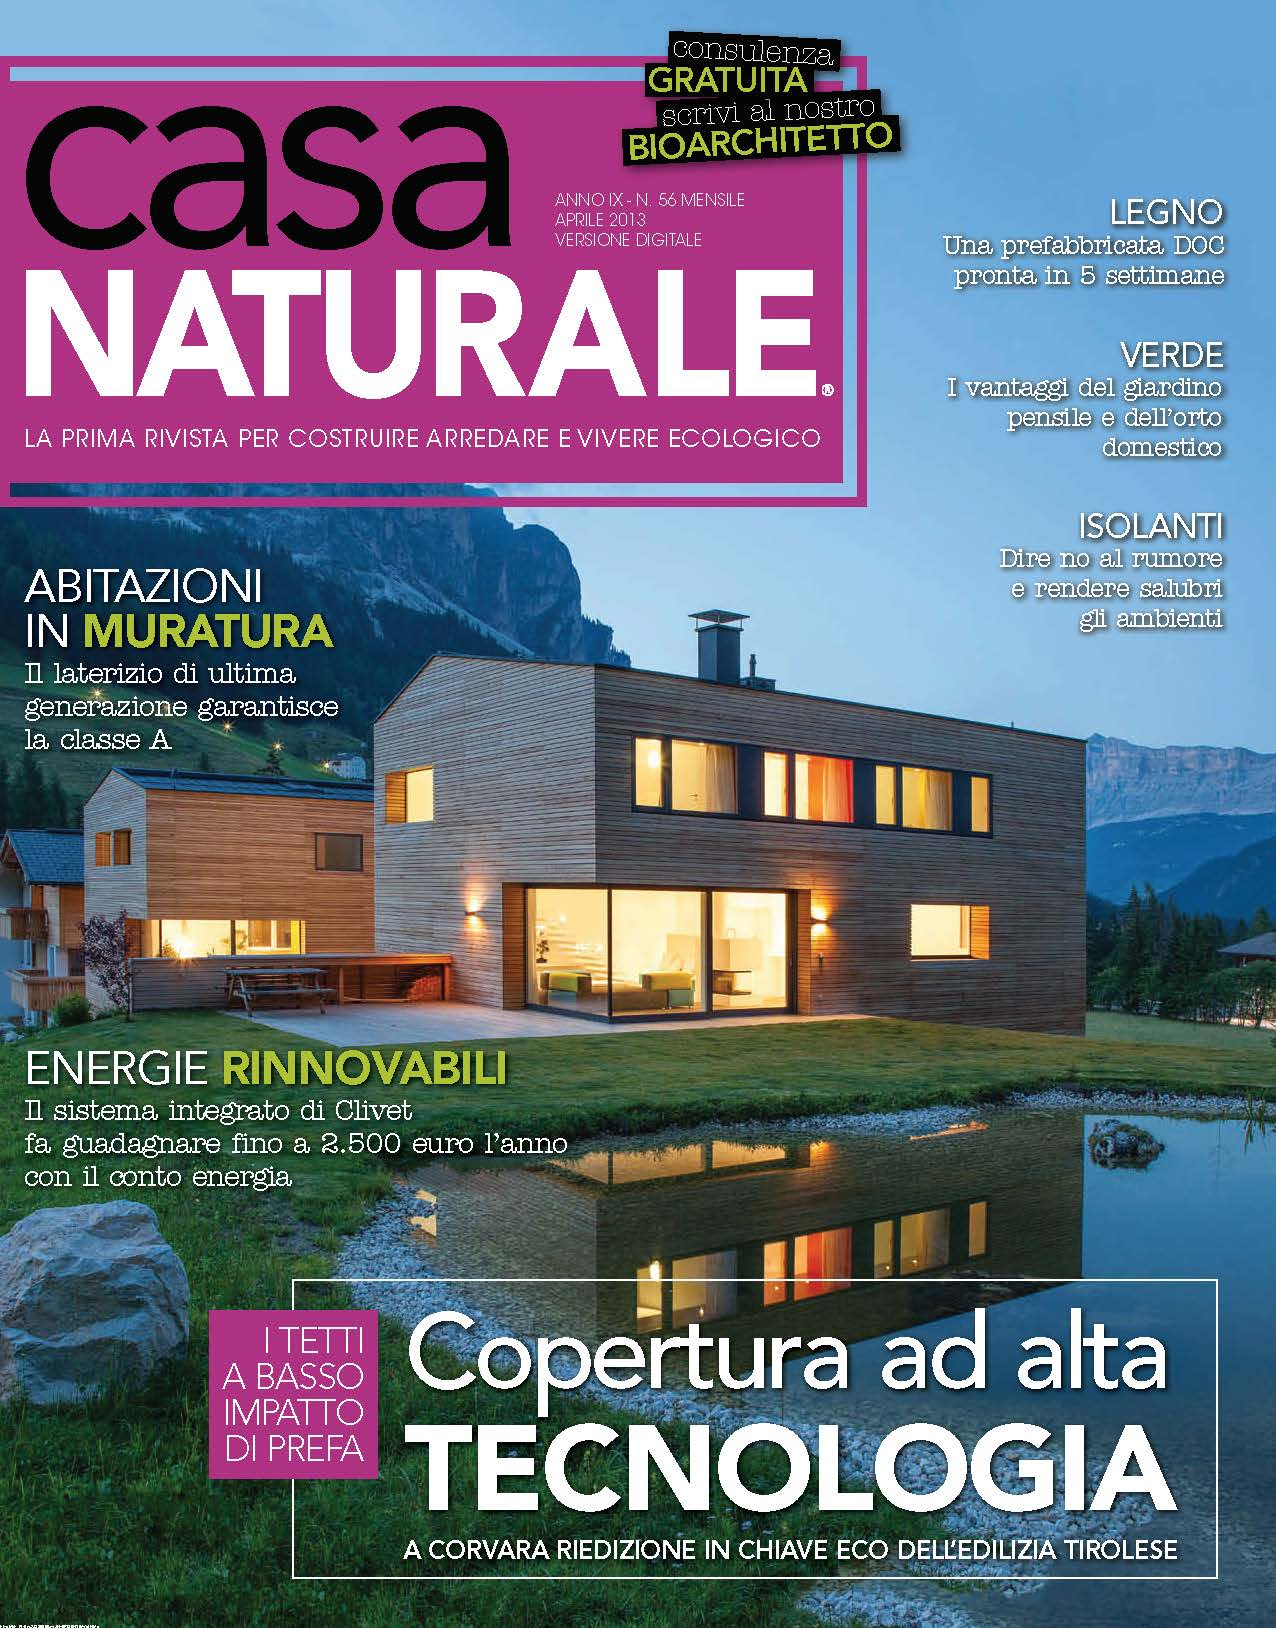 FernRidgeLake_Casa-Naturale_MaterialiEfficientiERecuperati_April-2013_Cover.jpg